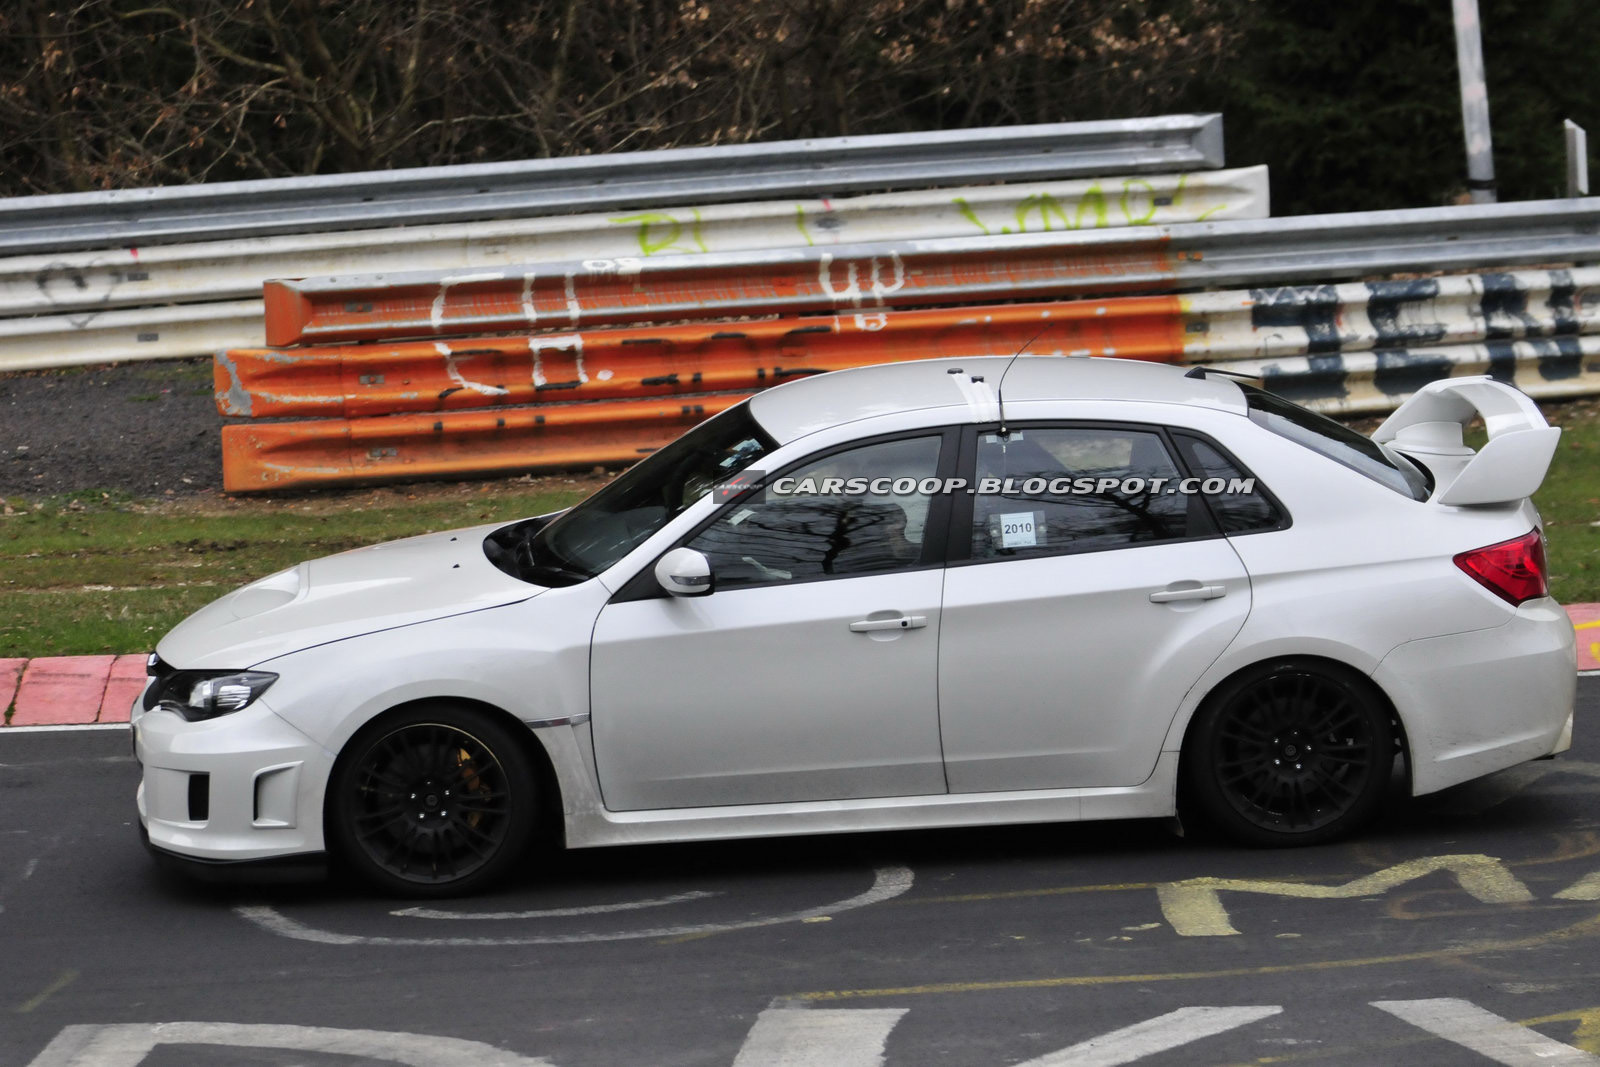 Sport cars and the concept spied 2011 subaru impreza wrx sti spec you might also like publicscrutiny Gallery